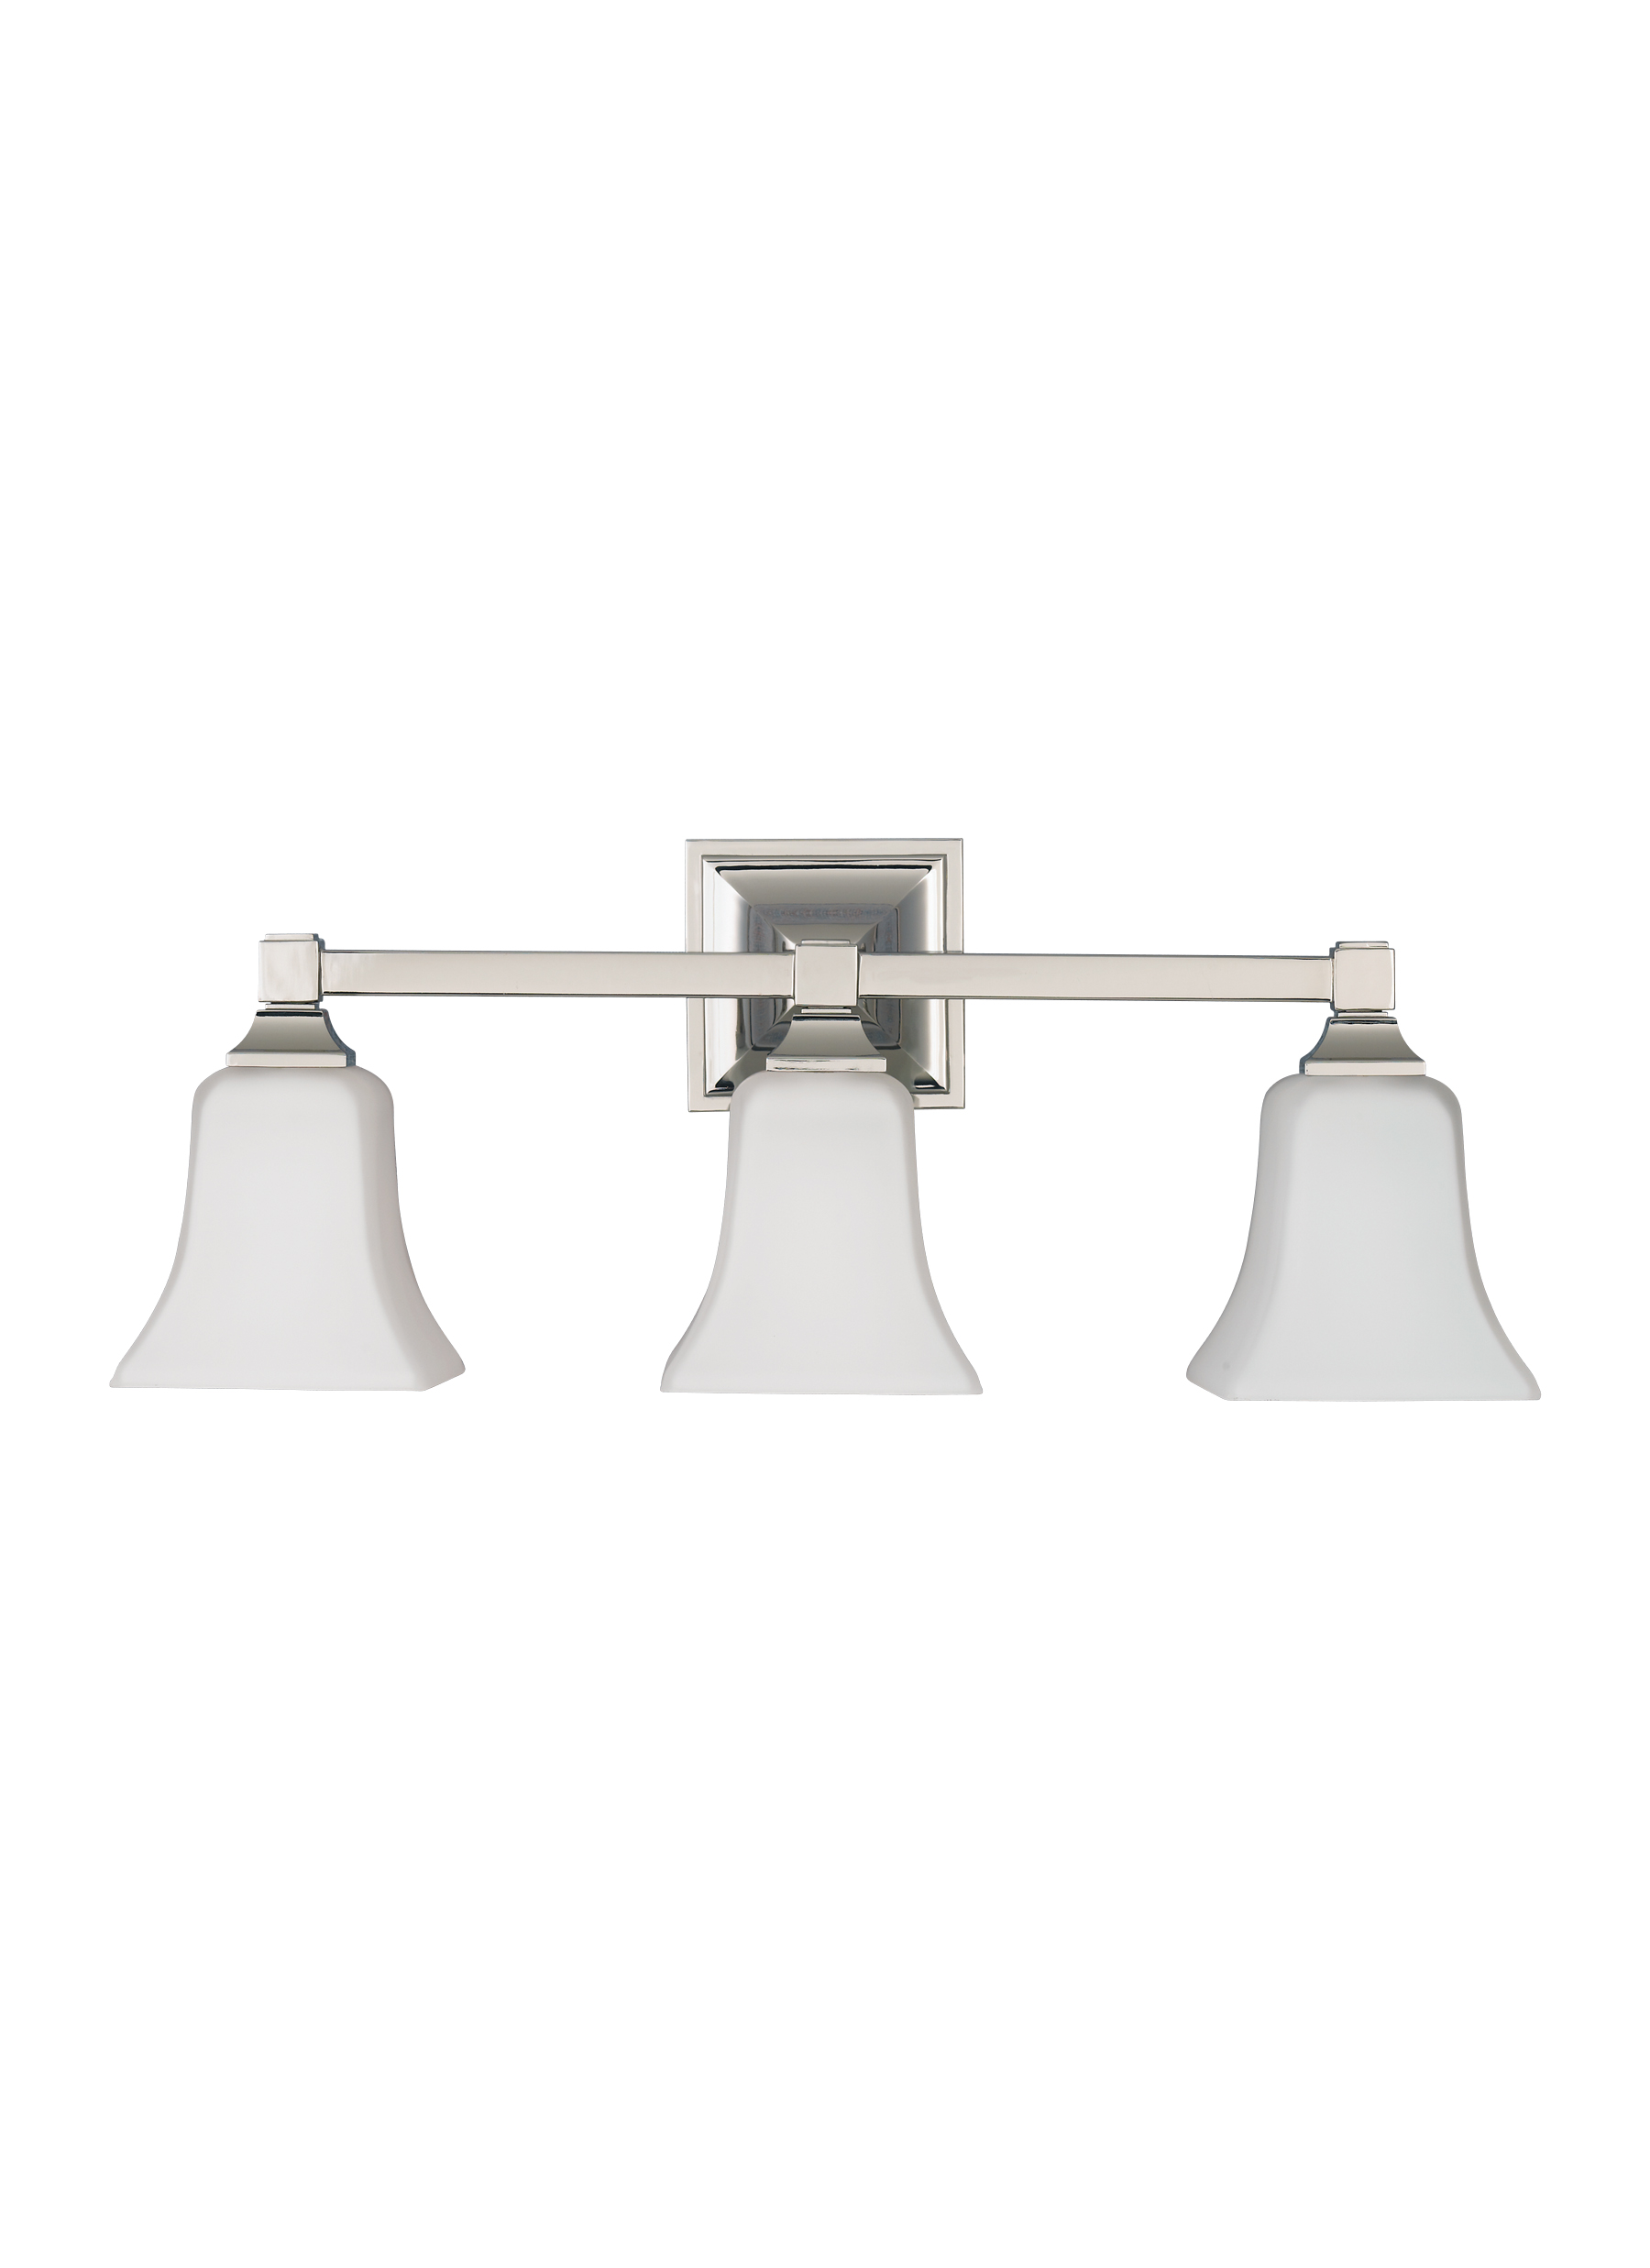 VS12403-PN,3 - Light Vanity Fixture,Polished Nickel